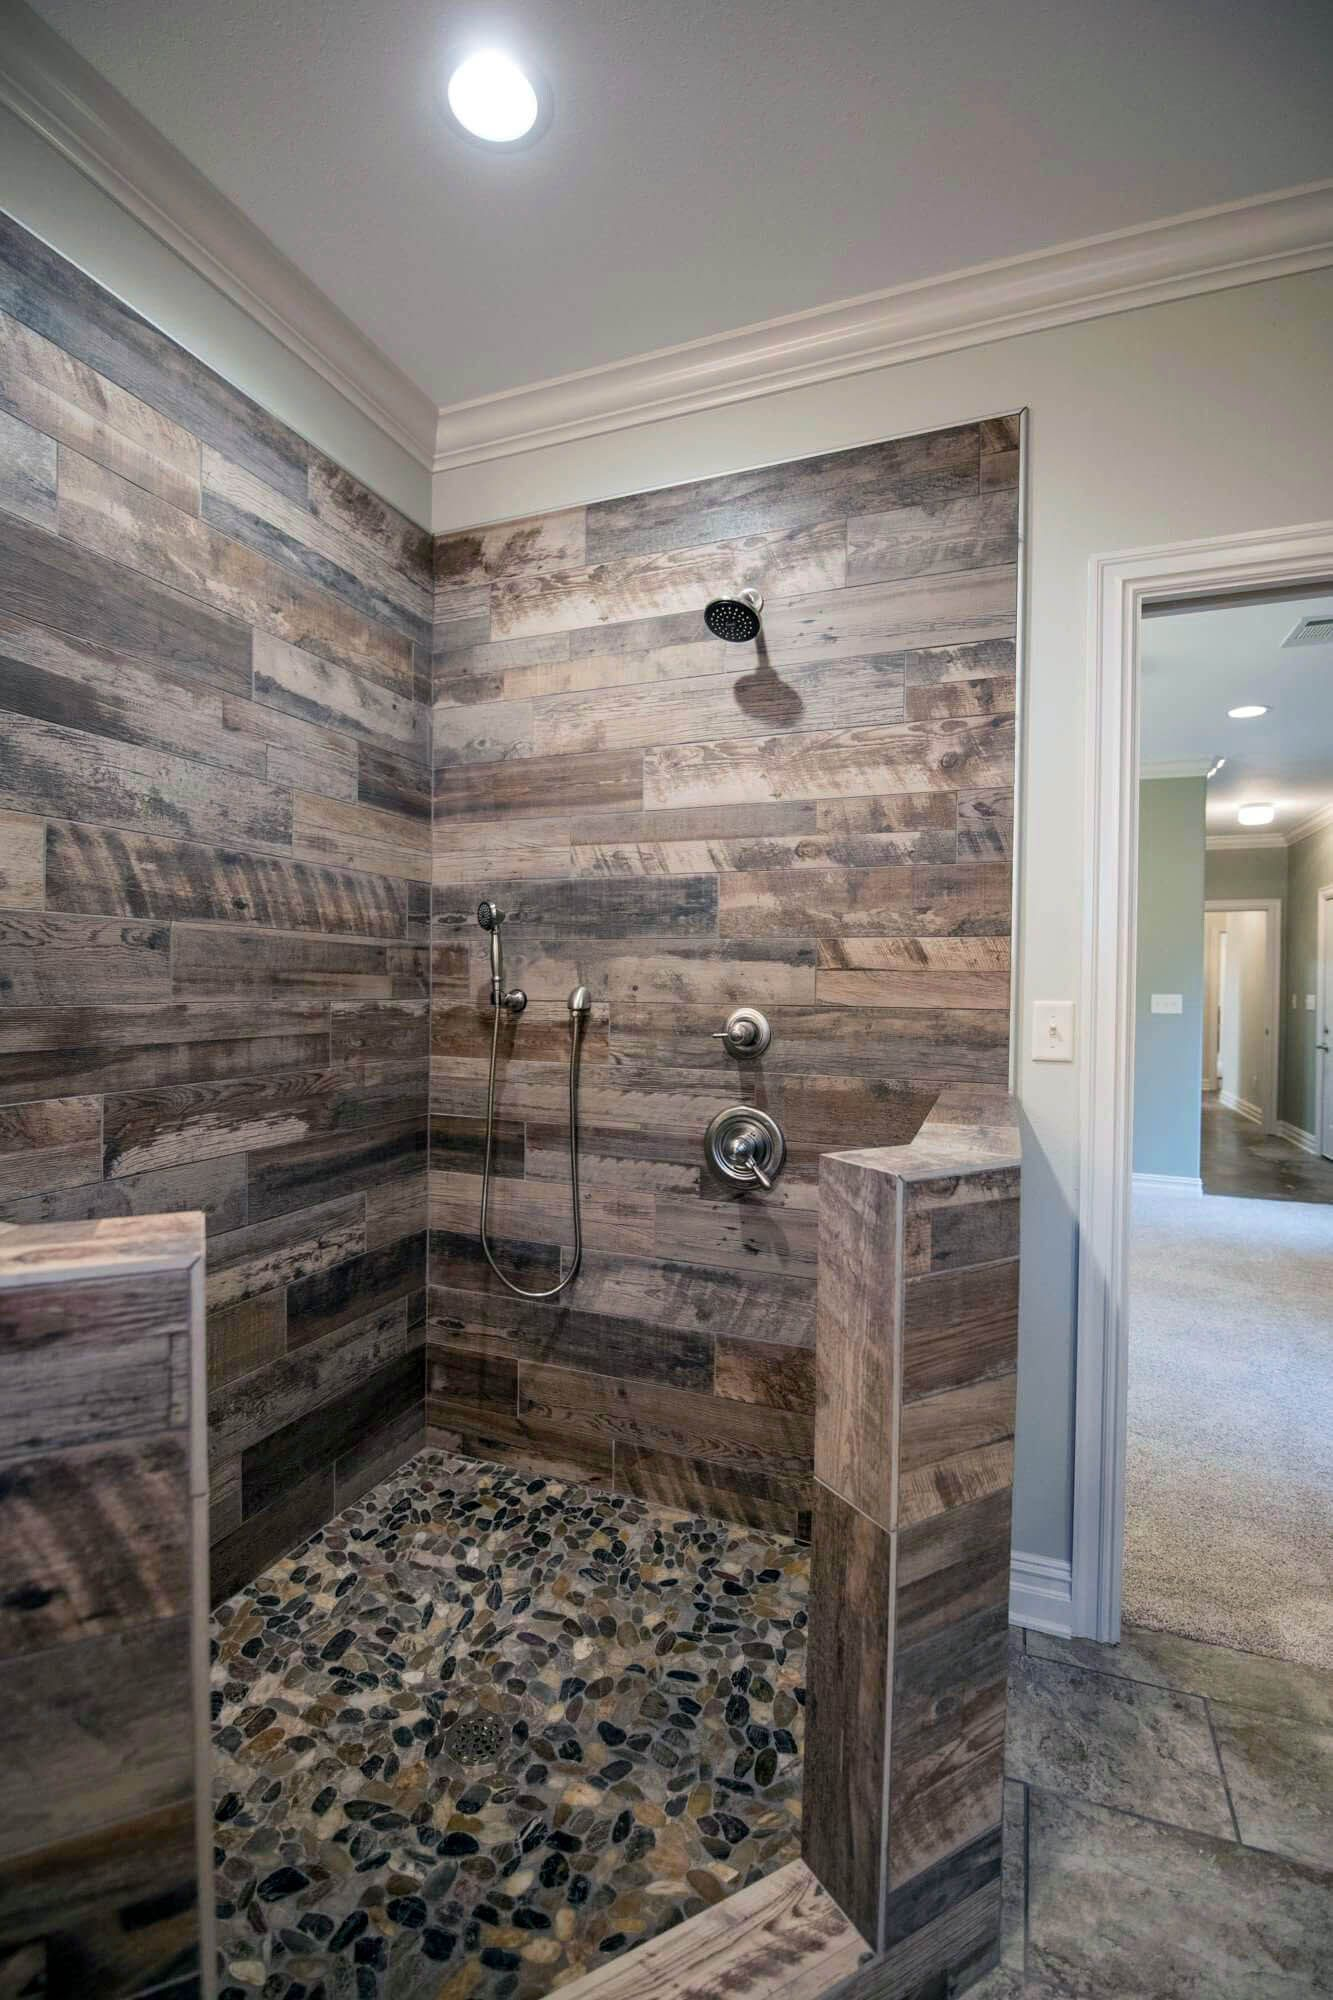 10 Of Our Favorite Shower Tile Ideas Rusticbathroomdesigns